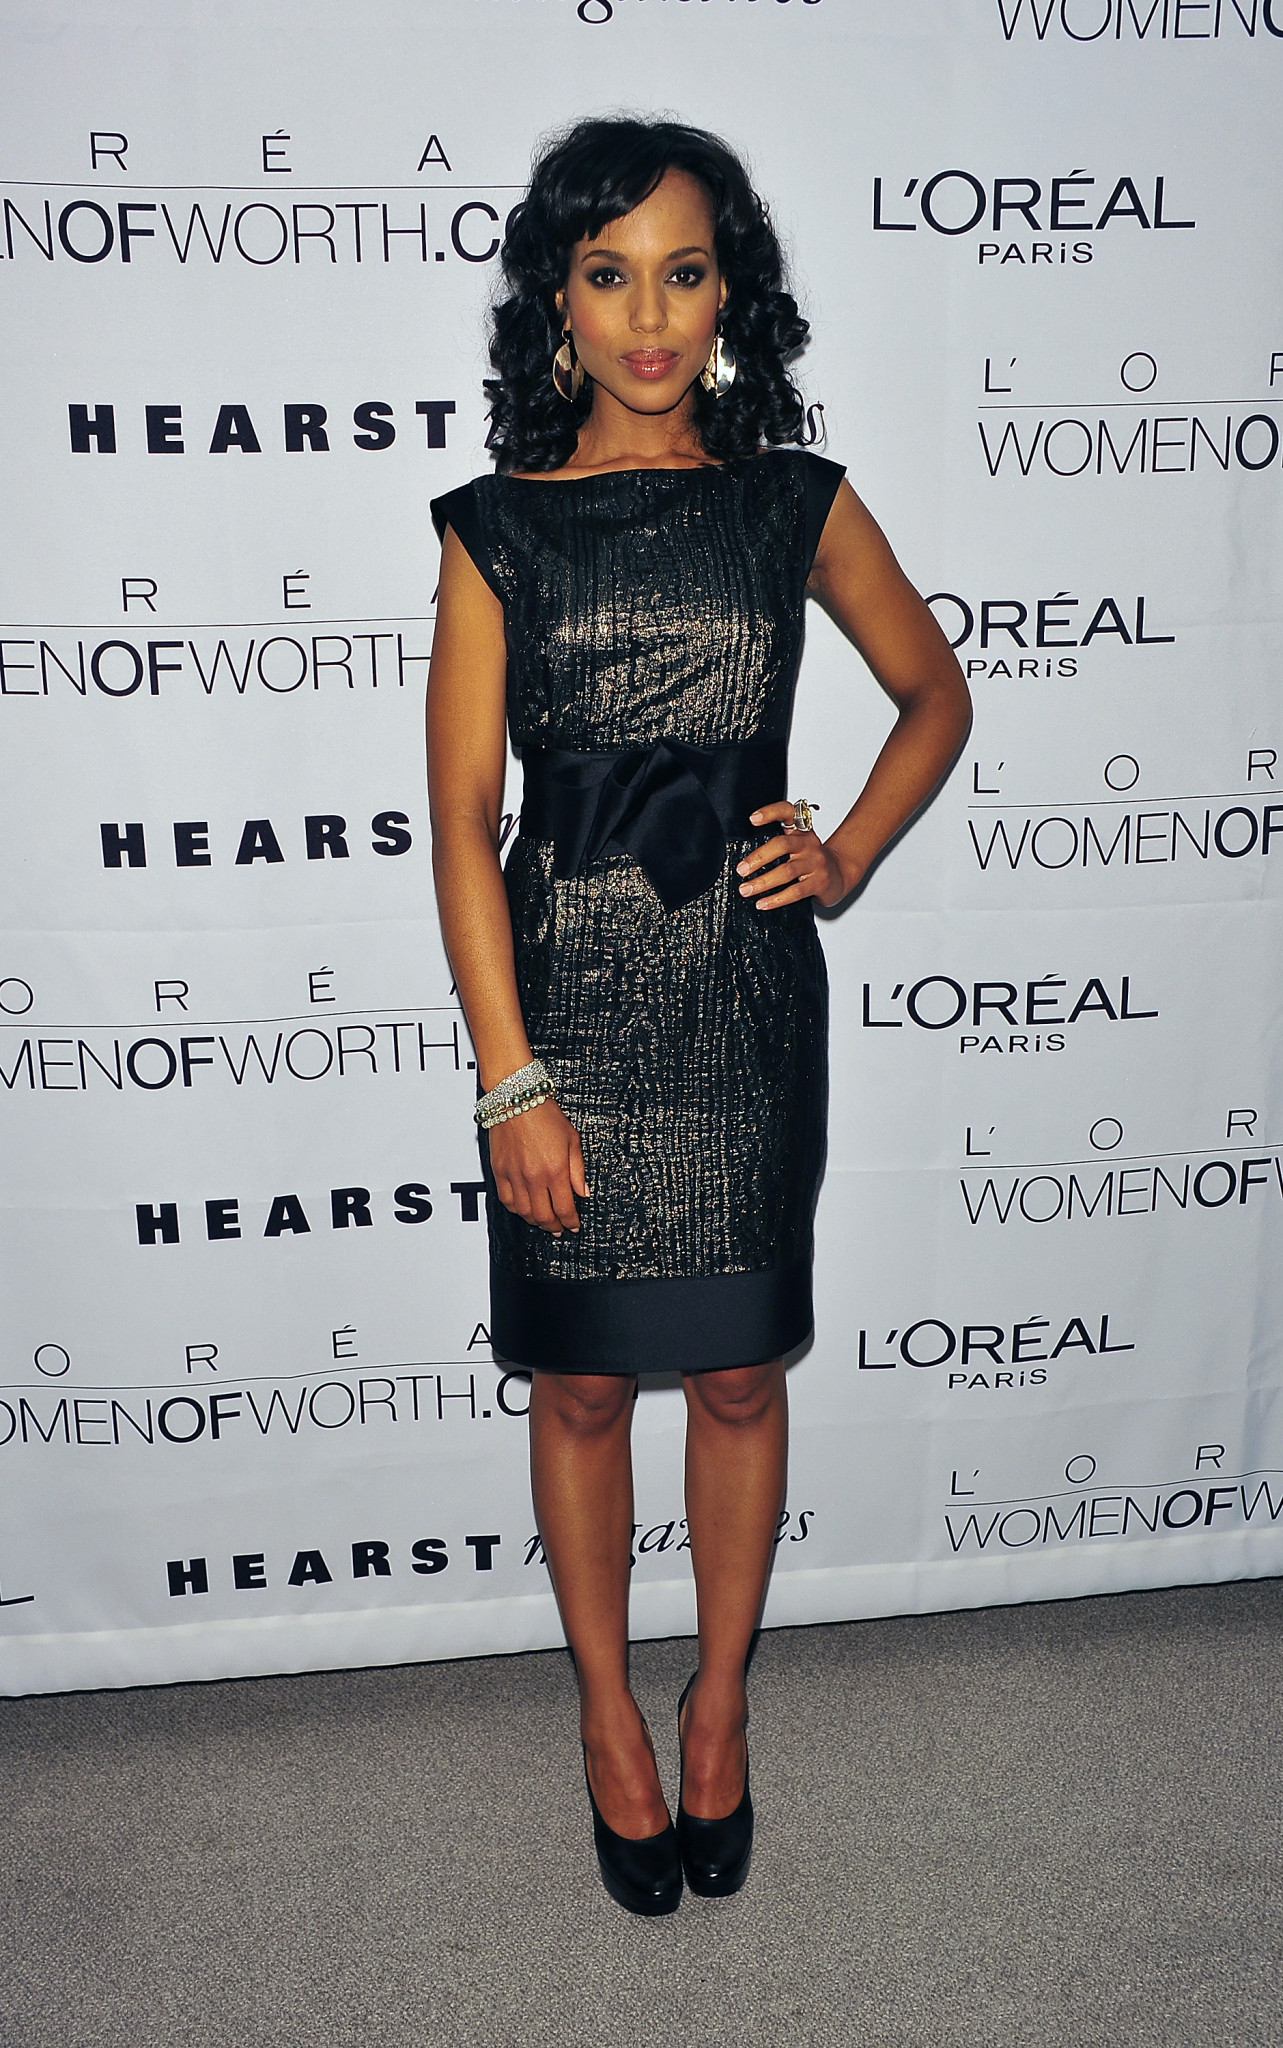 NEW YORK, NY - DECEMBER 09: Actress Kerry Washington attends the 5th Annual L'Oreal Women of Worth awards at Hearst Tower on December 9, 2010 in New York City. (Photo by Brian Killian/WireImage)